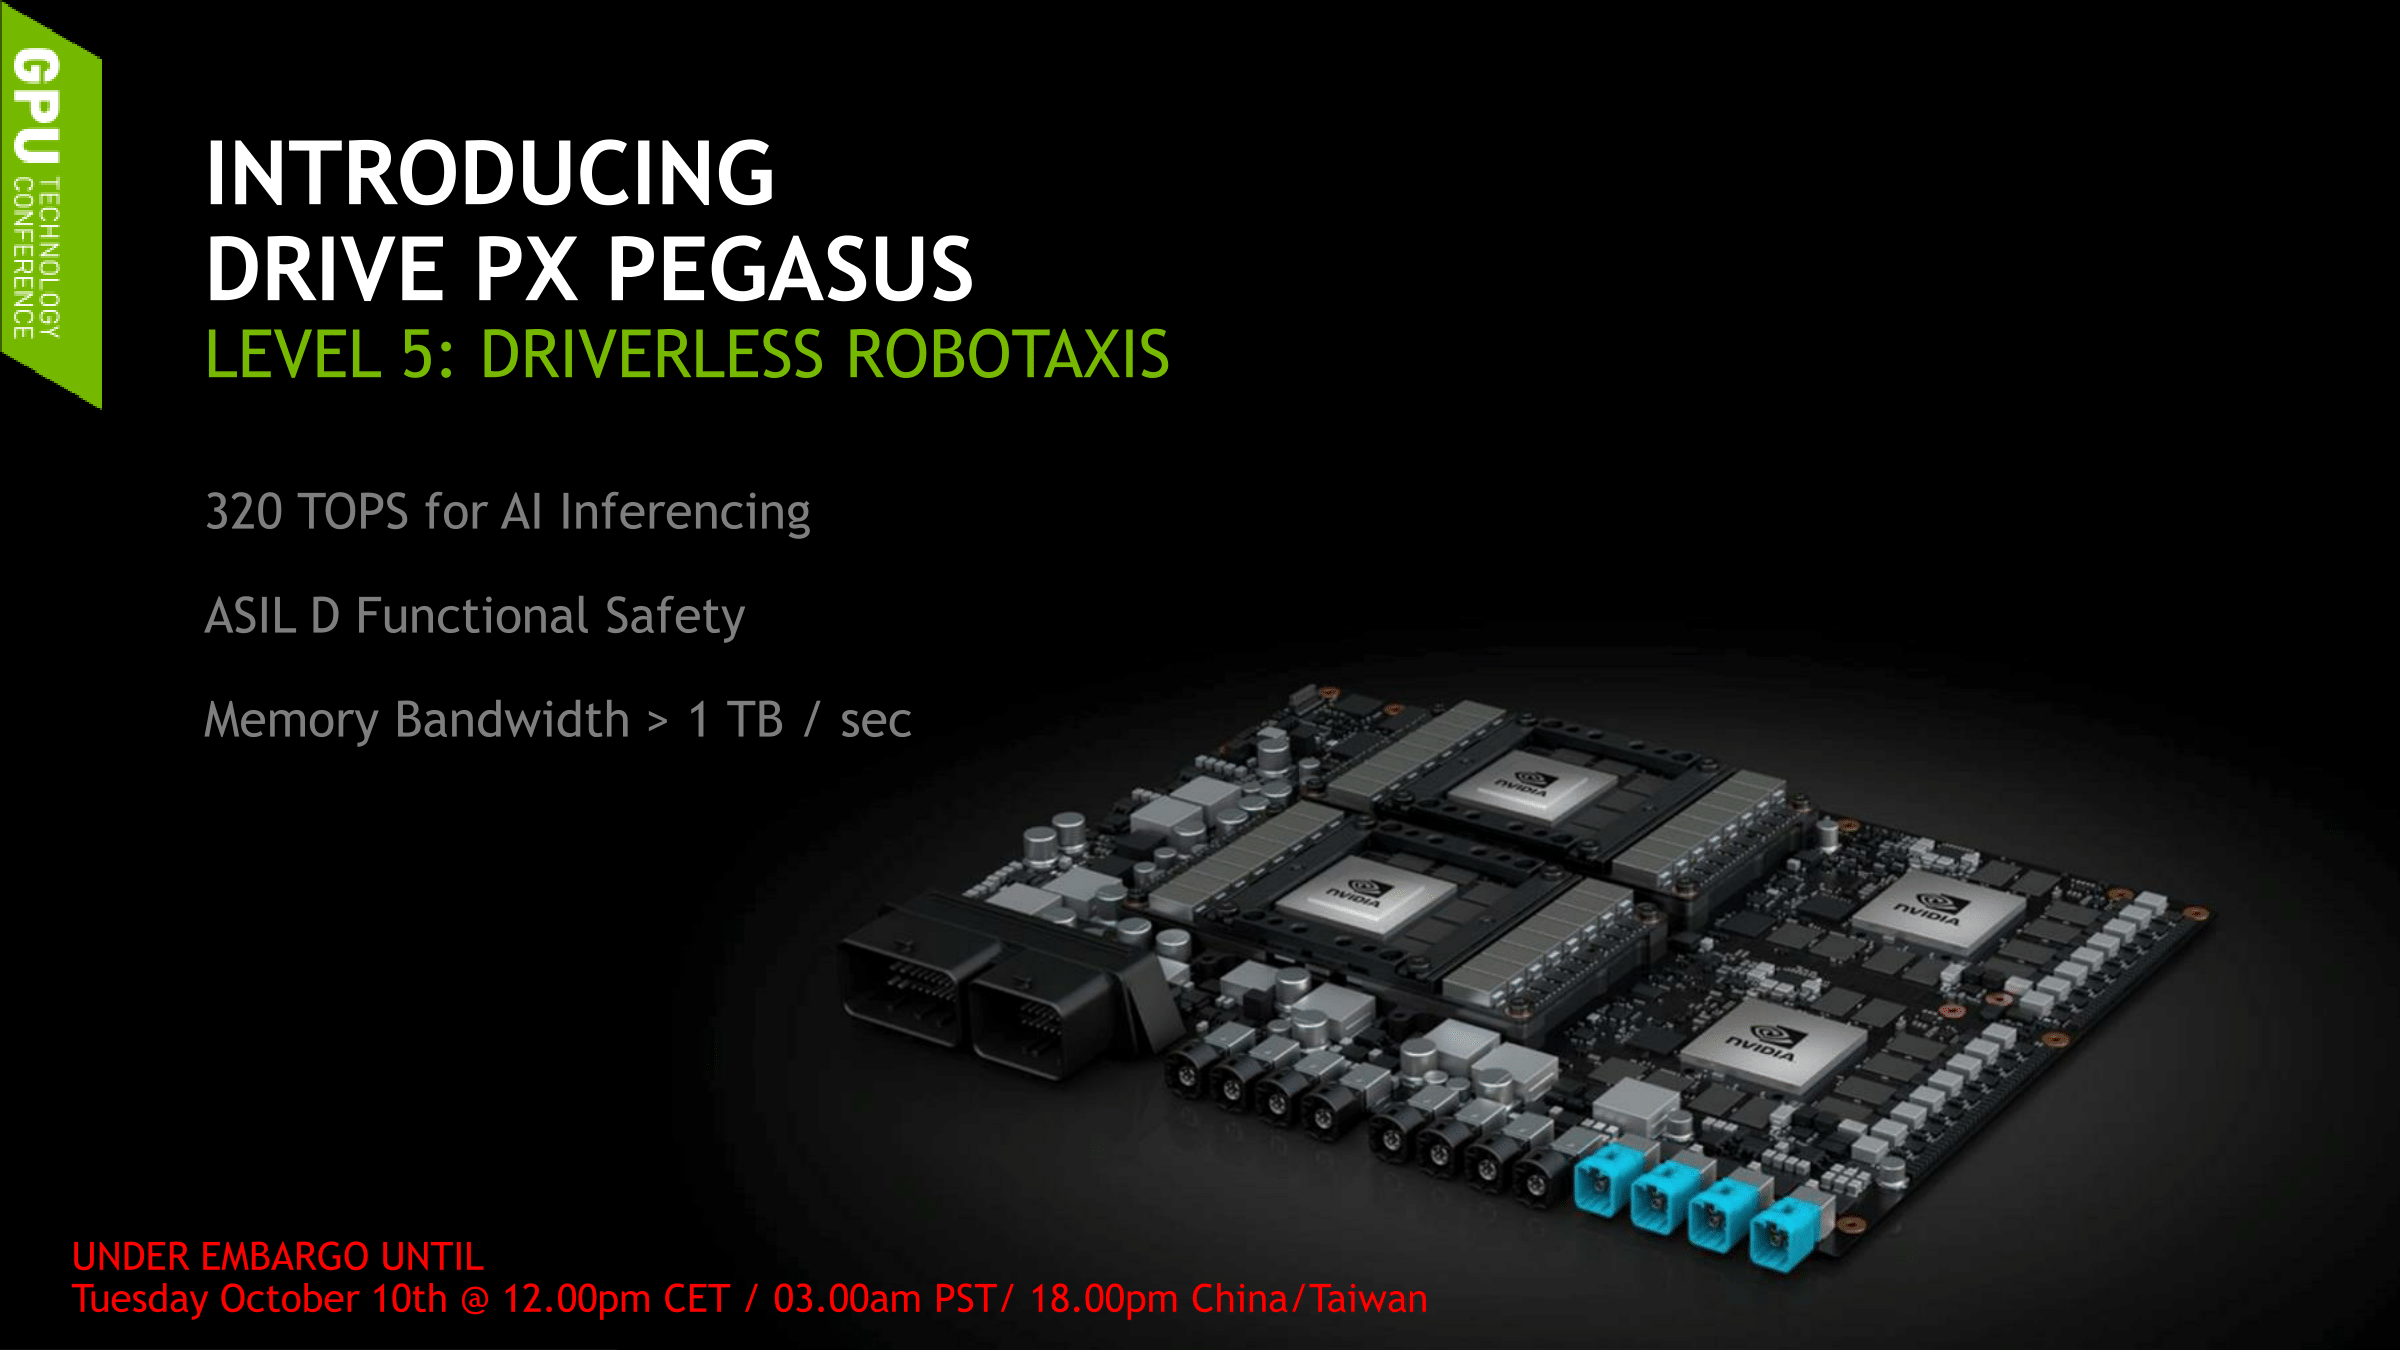 NVIDIA Announces Drive PX Pegasus at GTC Europe 2017: Level